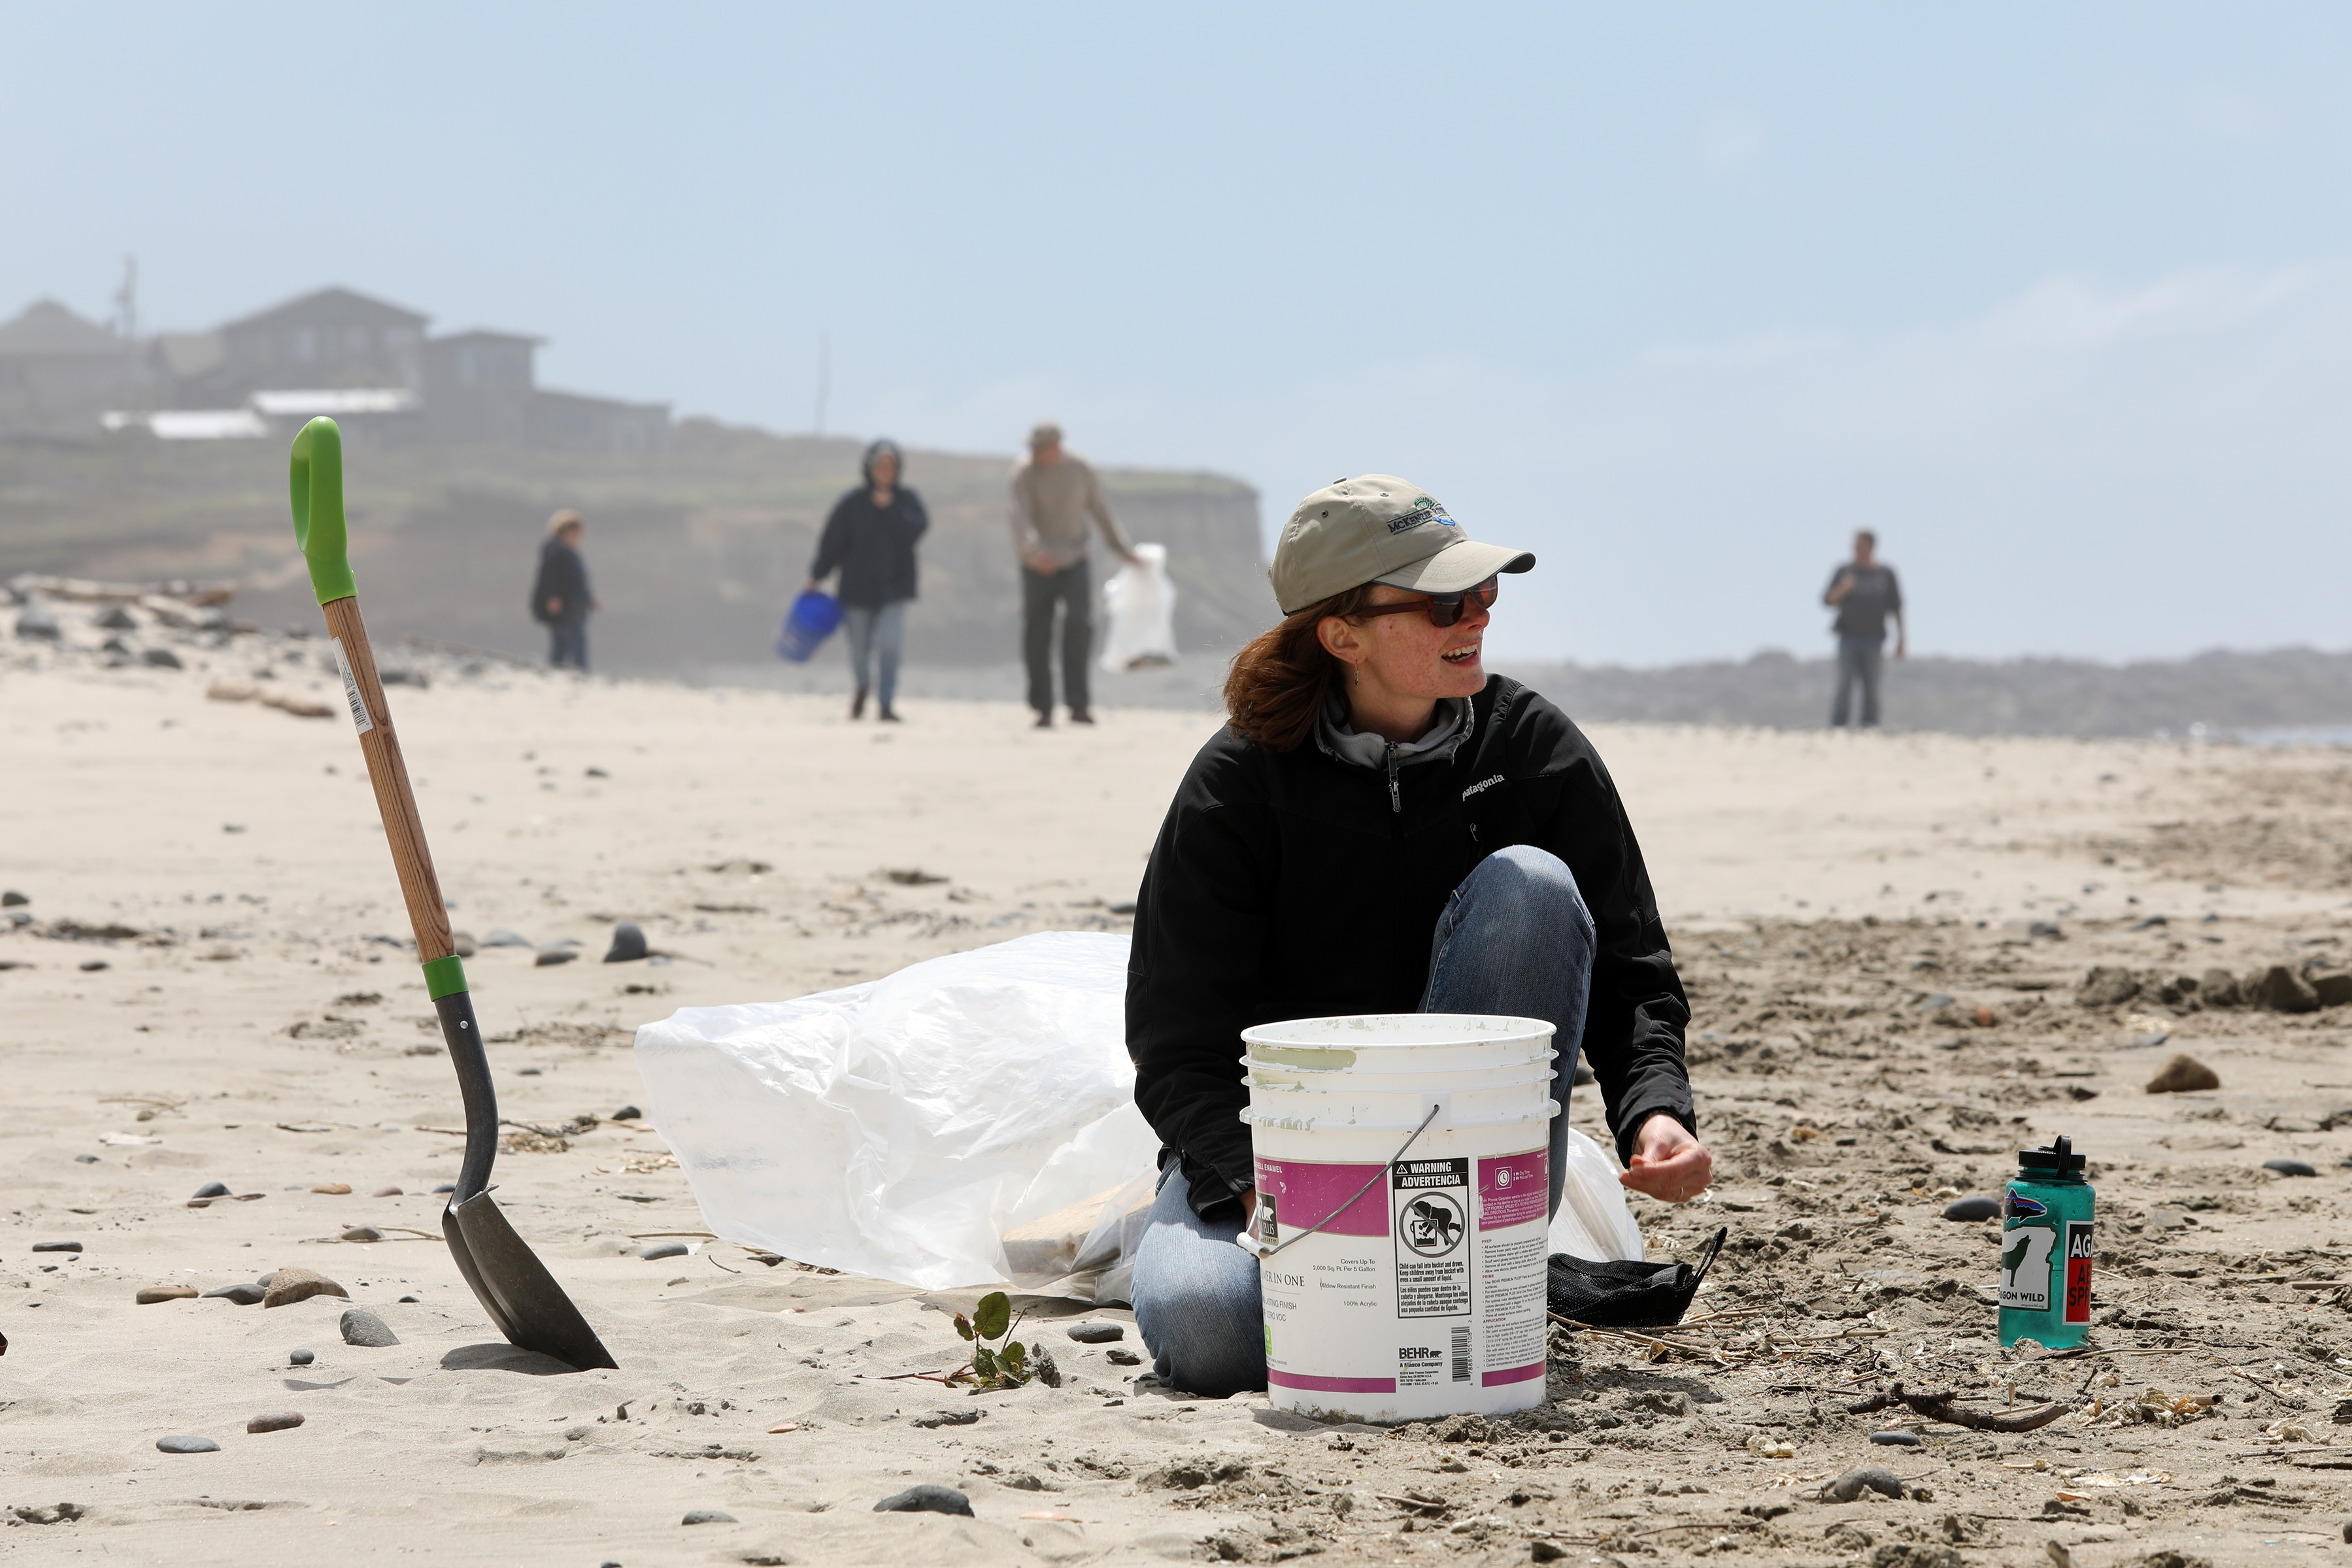 Woman on beach cleaning up trash